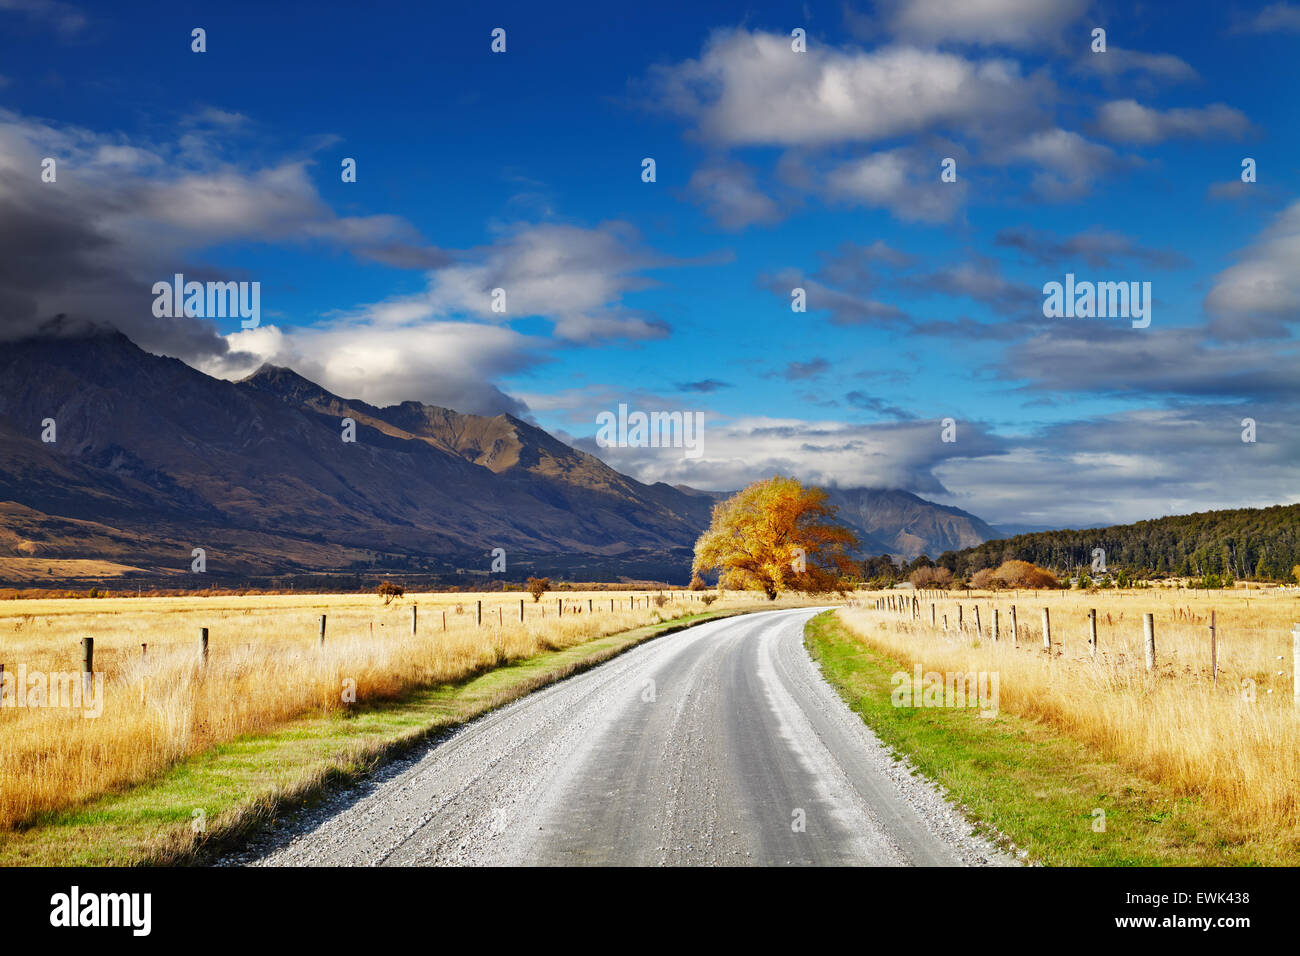 Mountain landscape with road and blue sky, Otago, New Zealand - Stock Image